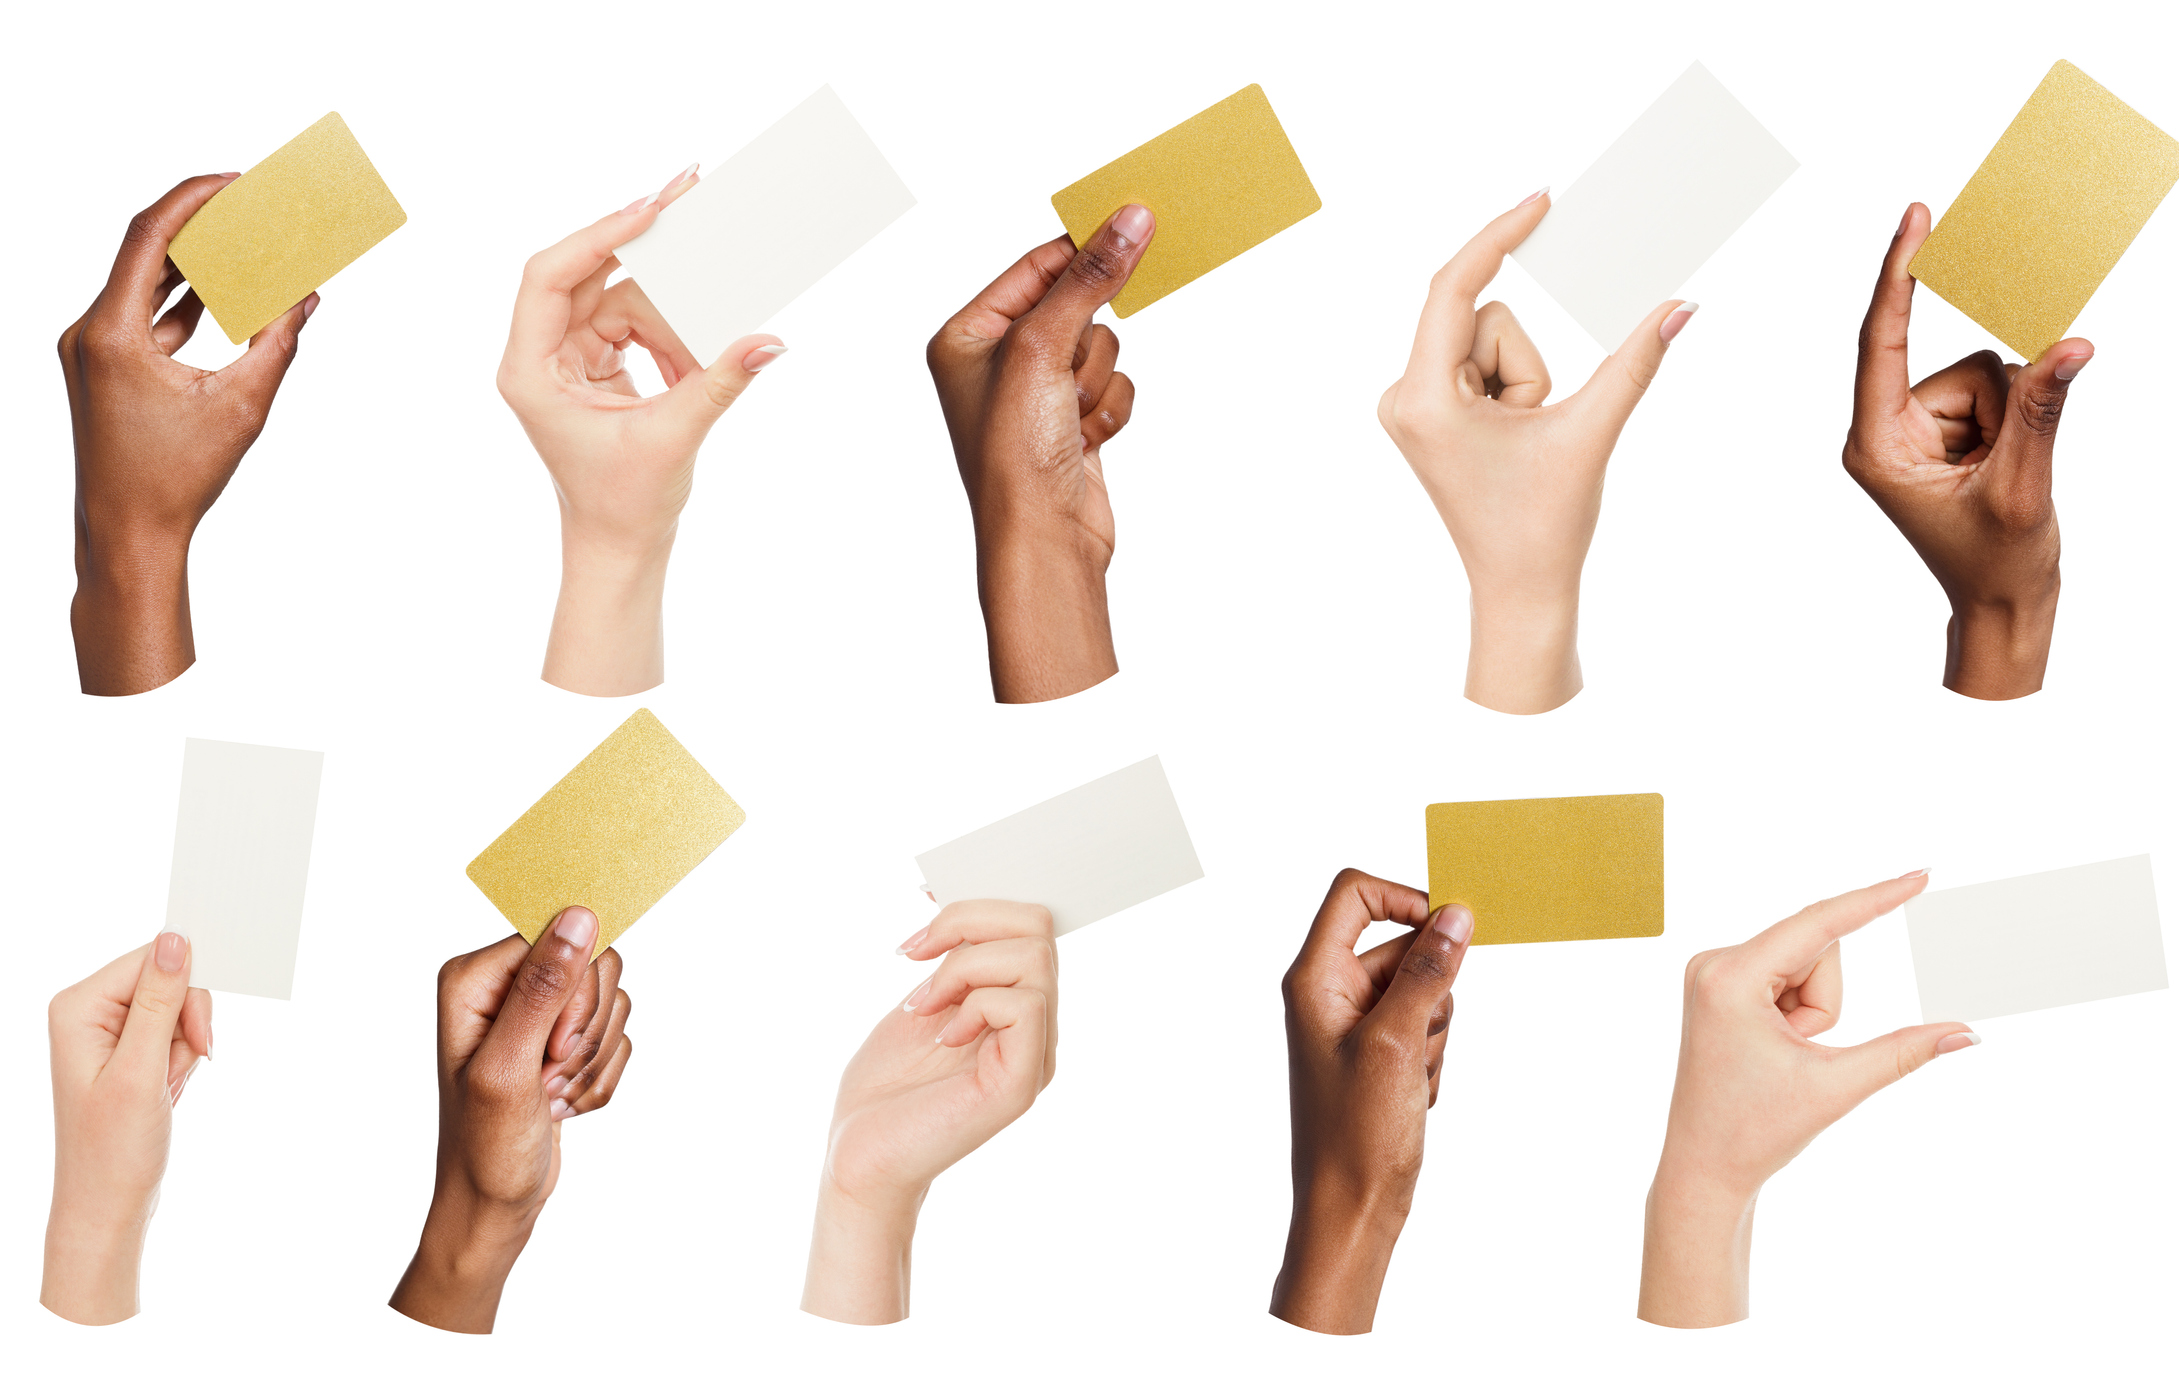 Different hands holding up various credit-card-sized nondescript note cards.